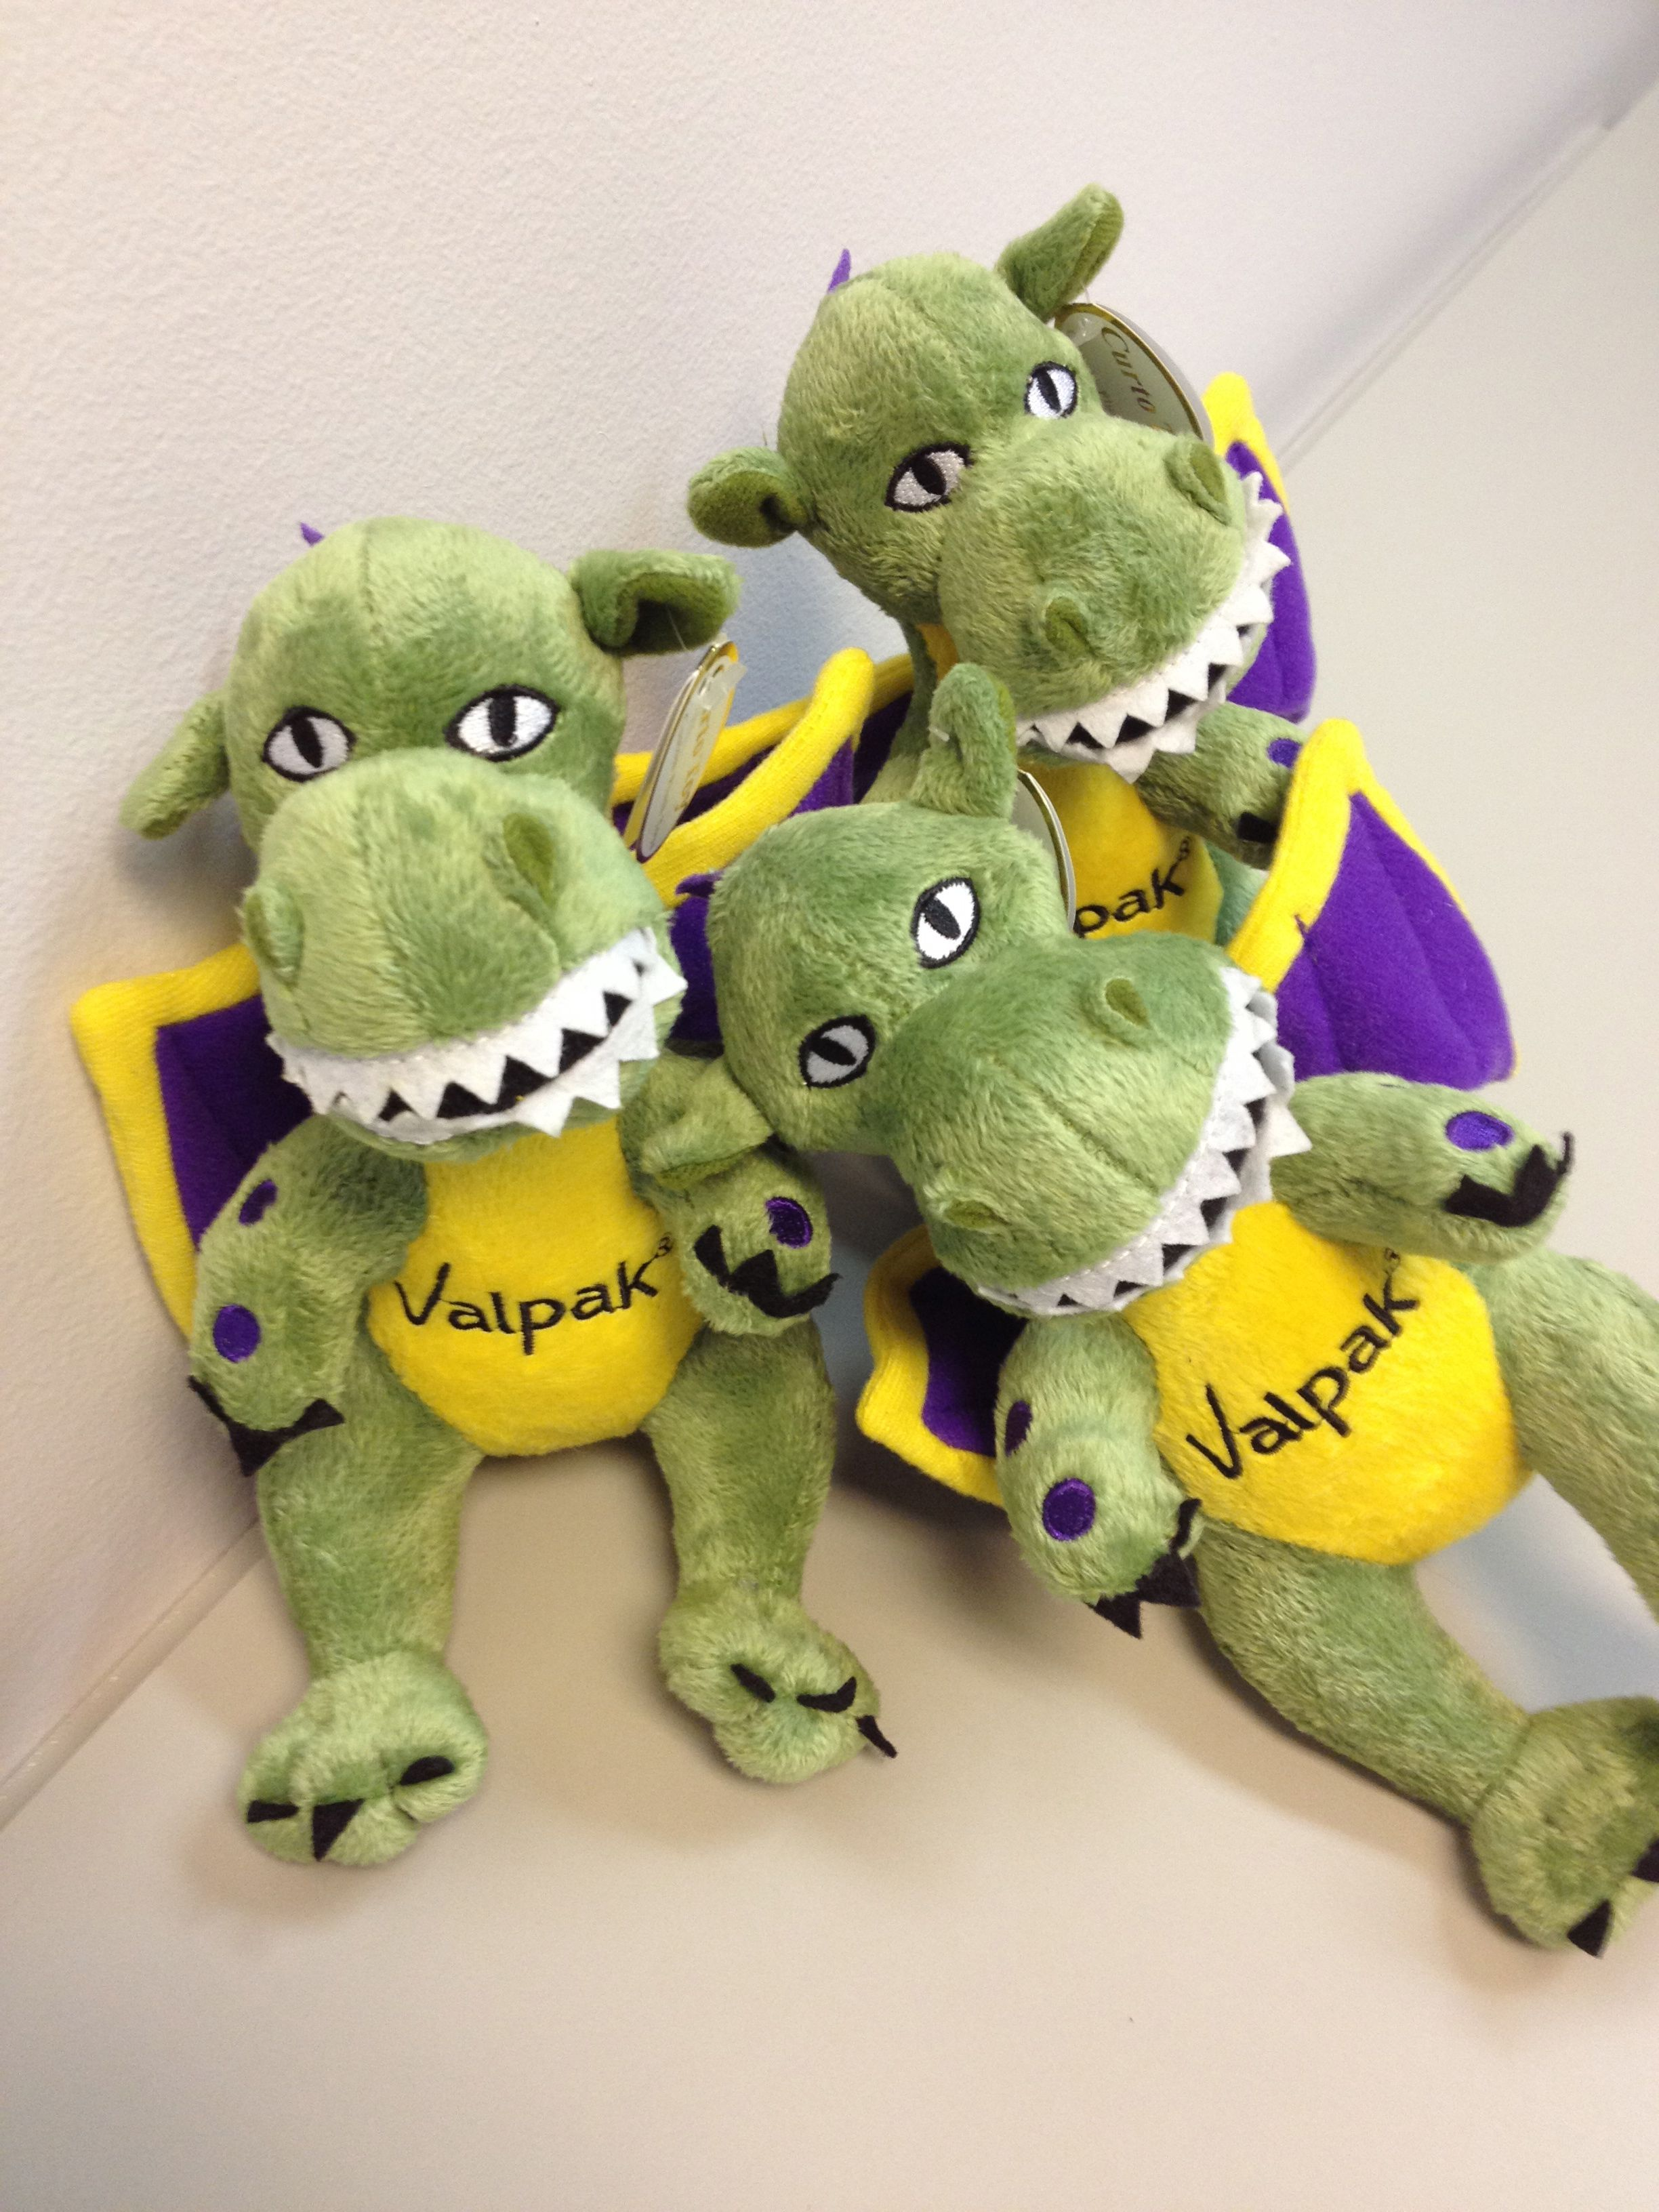 VALPAK SWEEPS + BALTHAZAR DRAGON GIVEAWAY {5 WINNERS}